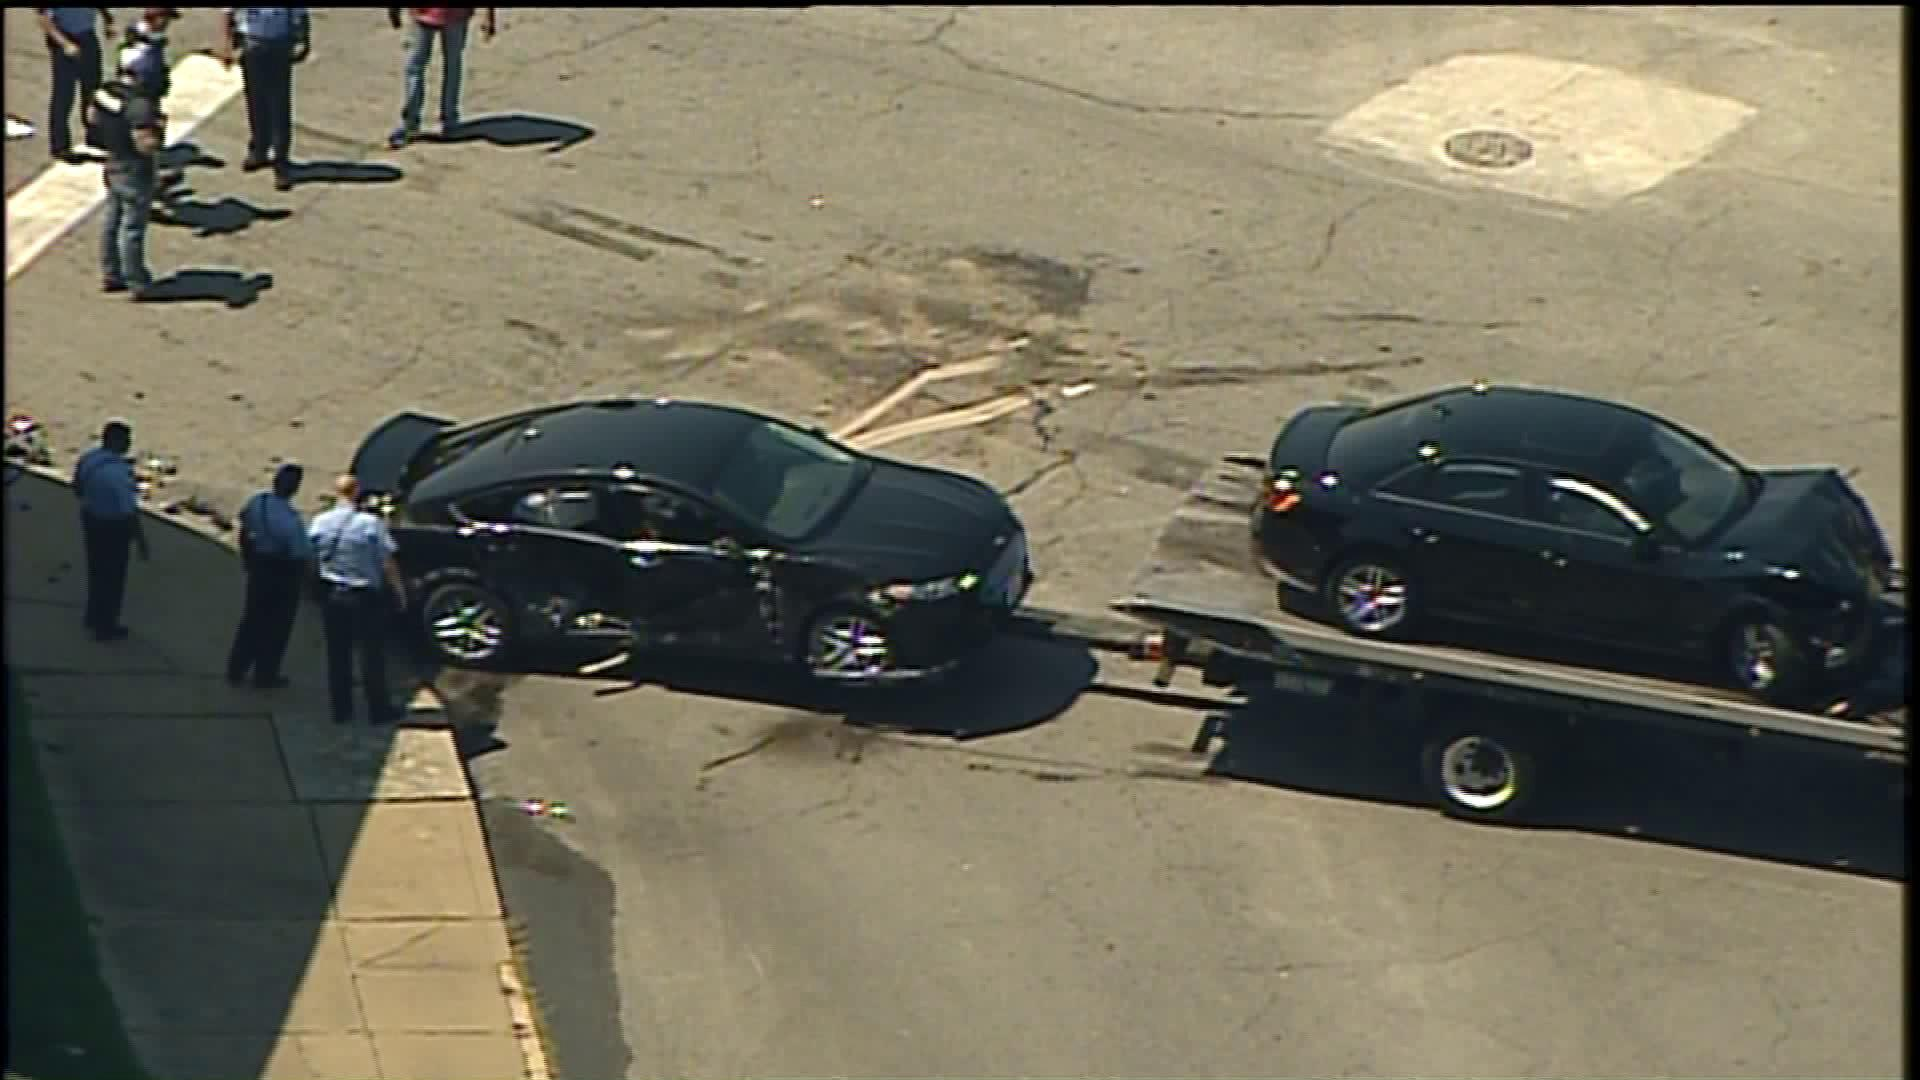 2 Officers Injured After Suspect Strikes Vehicle in St. Louis